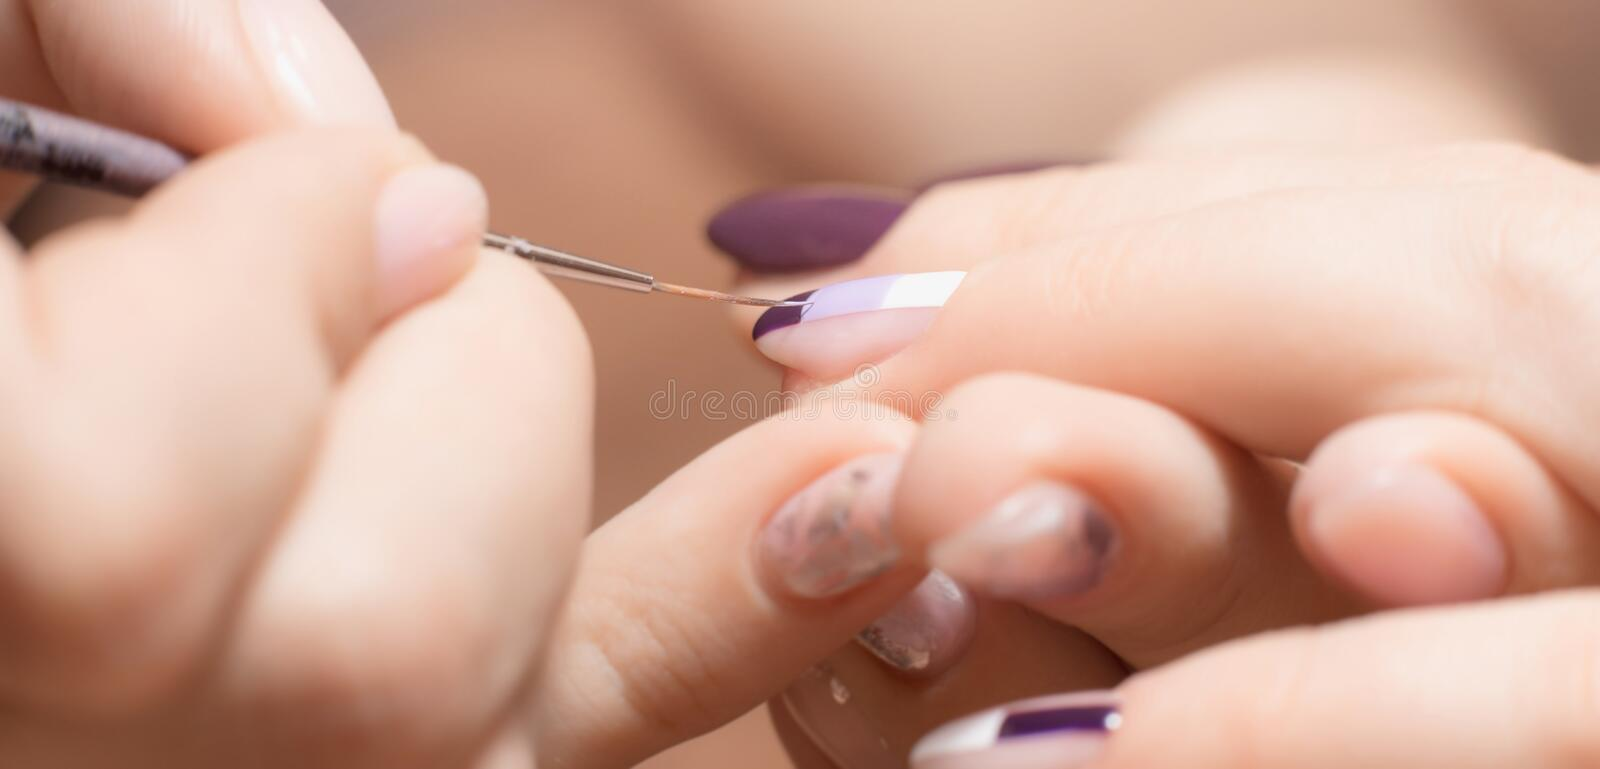 Manicure and pedicure. Closeup of banner drawing picture on nail in manicure salon. Hand care concept stock images